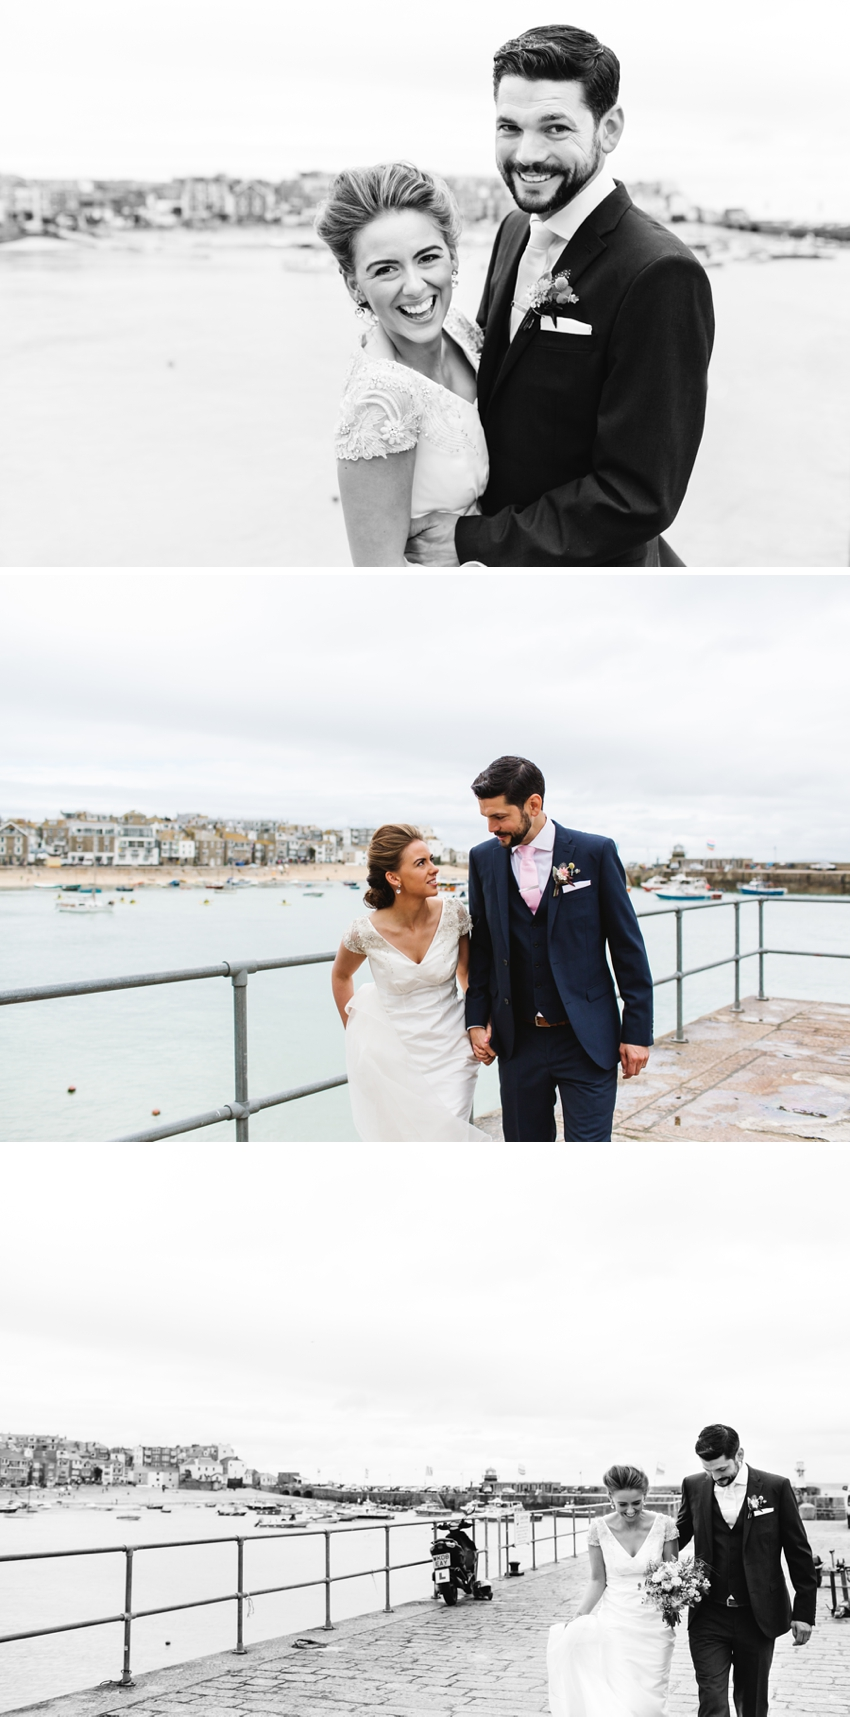 harbour, wedding, bride, groom